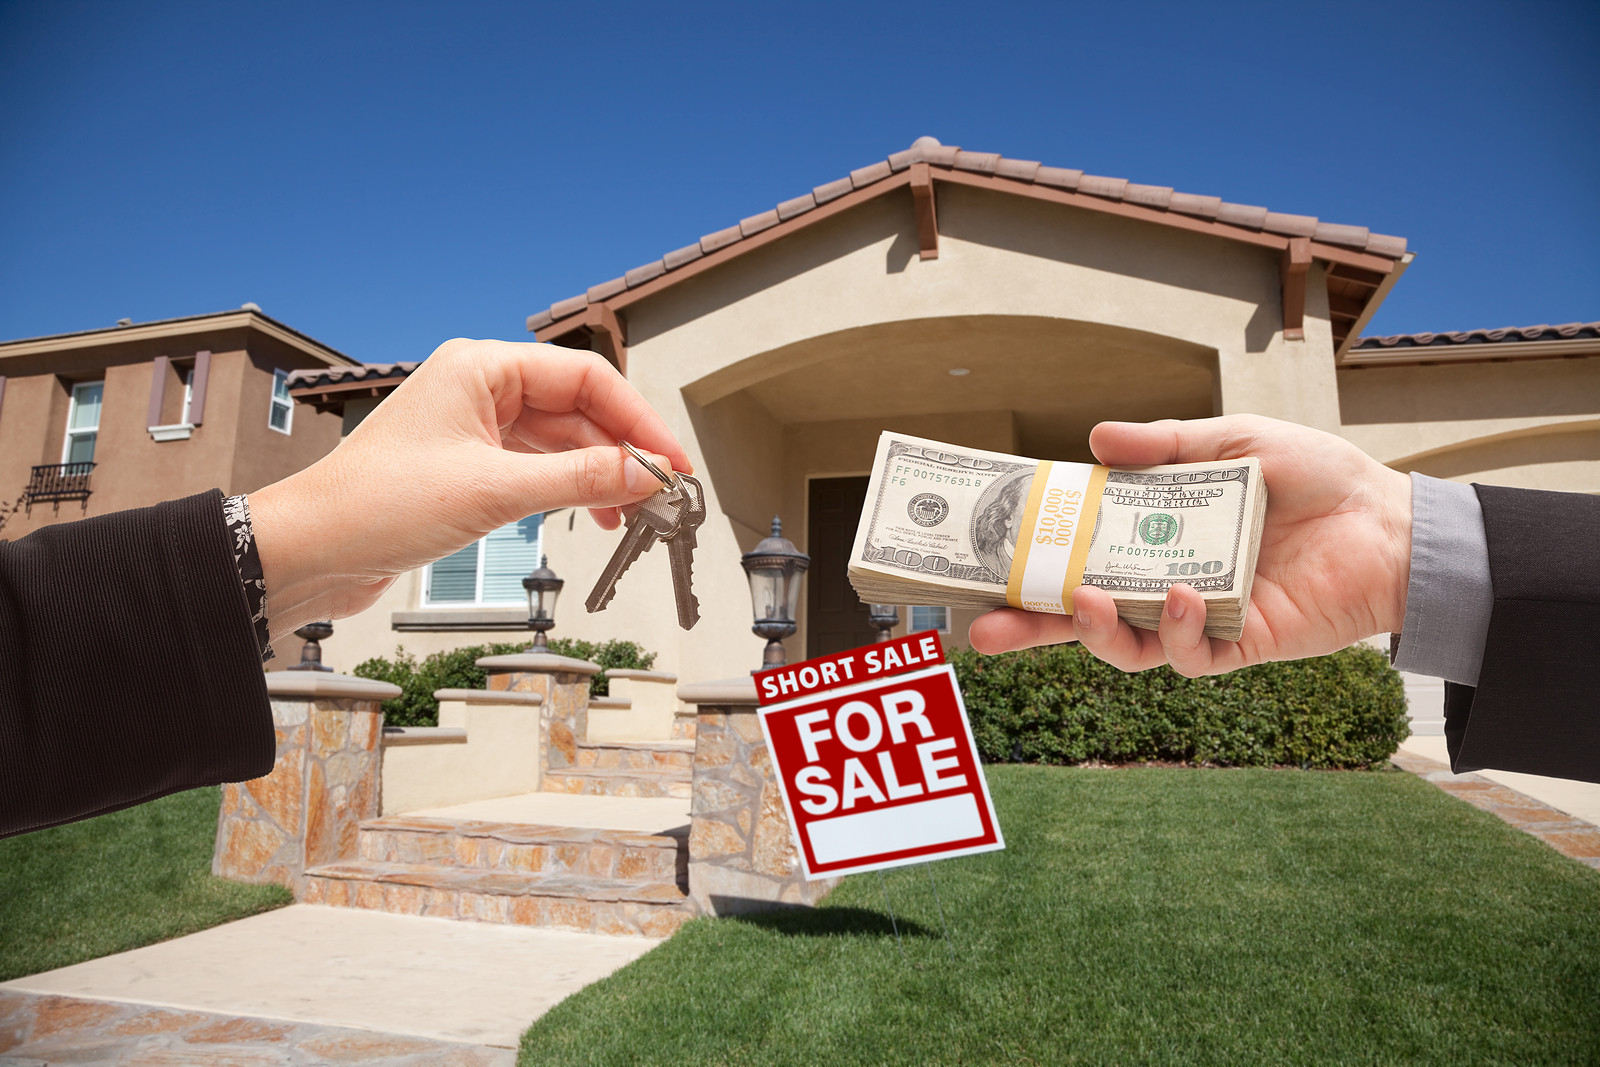 Sell your LA home, buy another LA home and keep your tax basis. Let me tell you about Prop 60 and 90